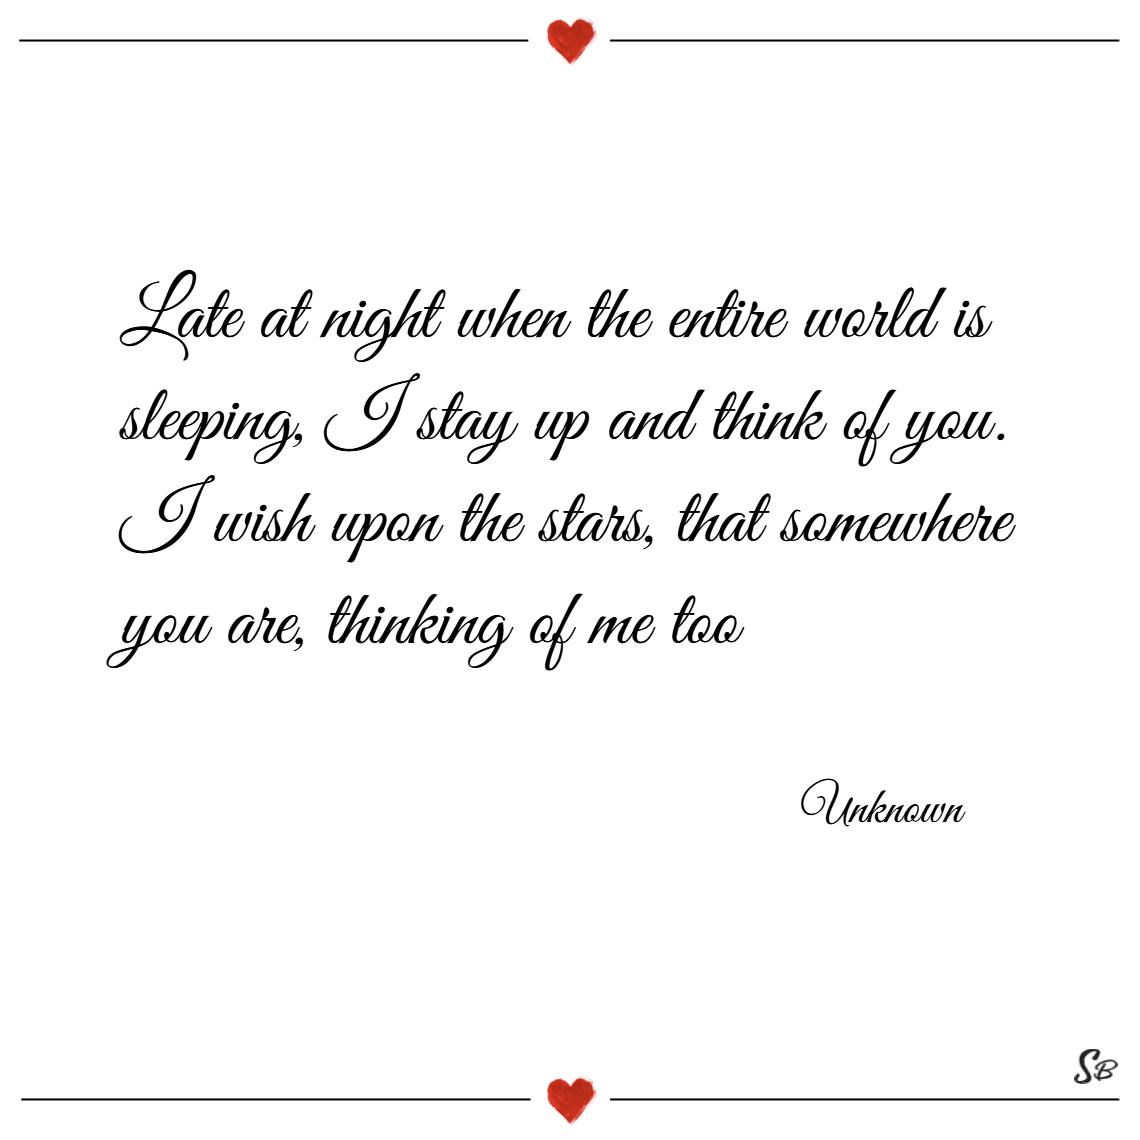 Late at night when the entire world is sleeping, i stay up and think of you. i wish upon the stars, that somewhere you are, thinking of me too. – unknown